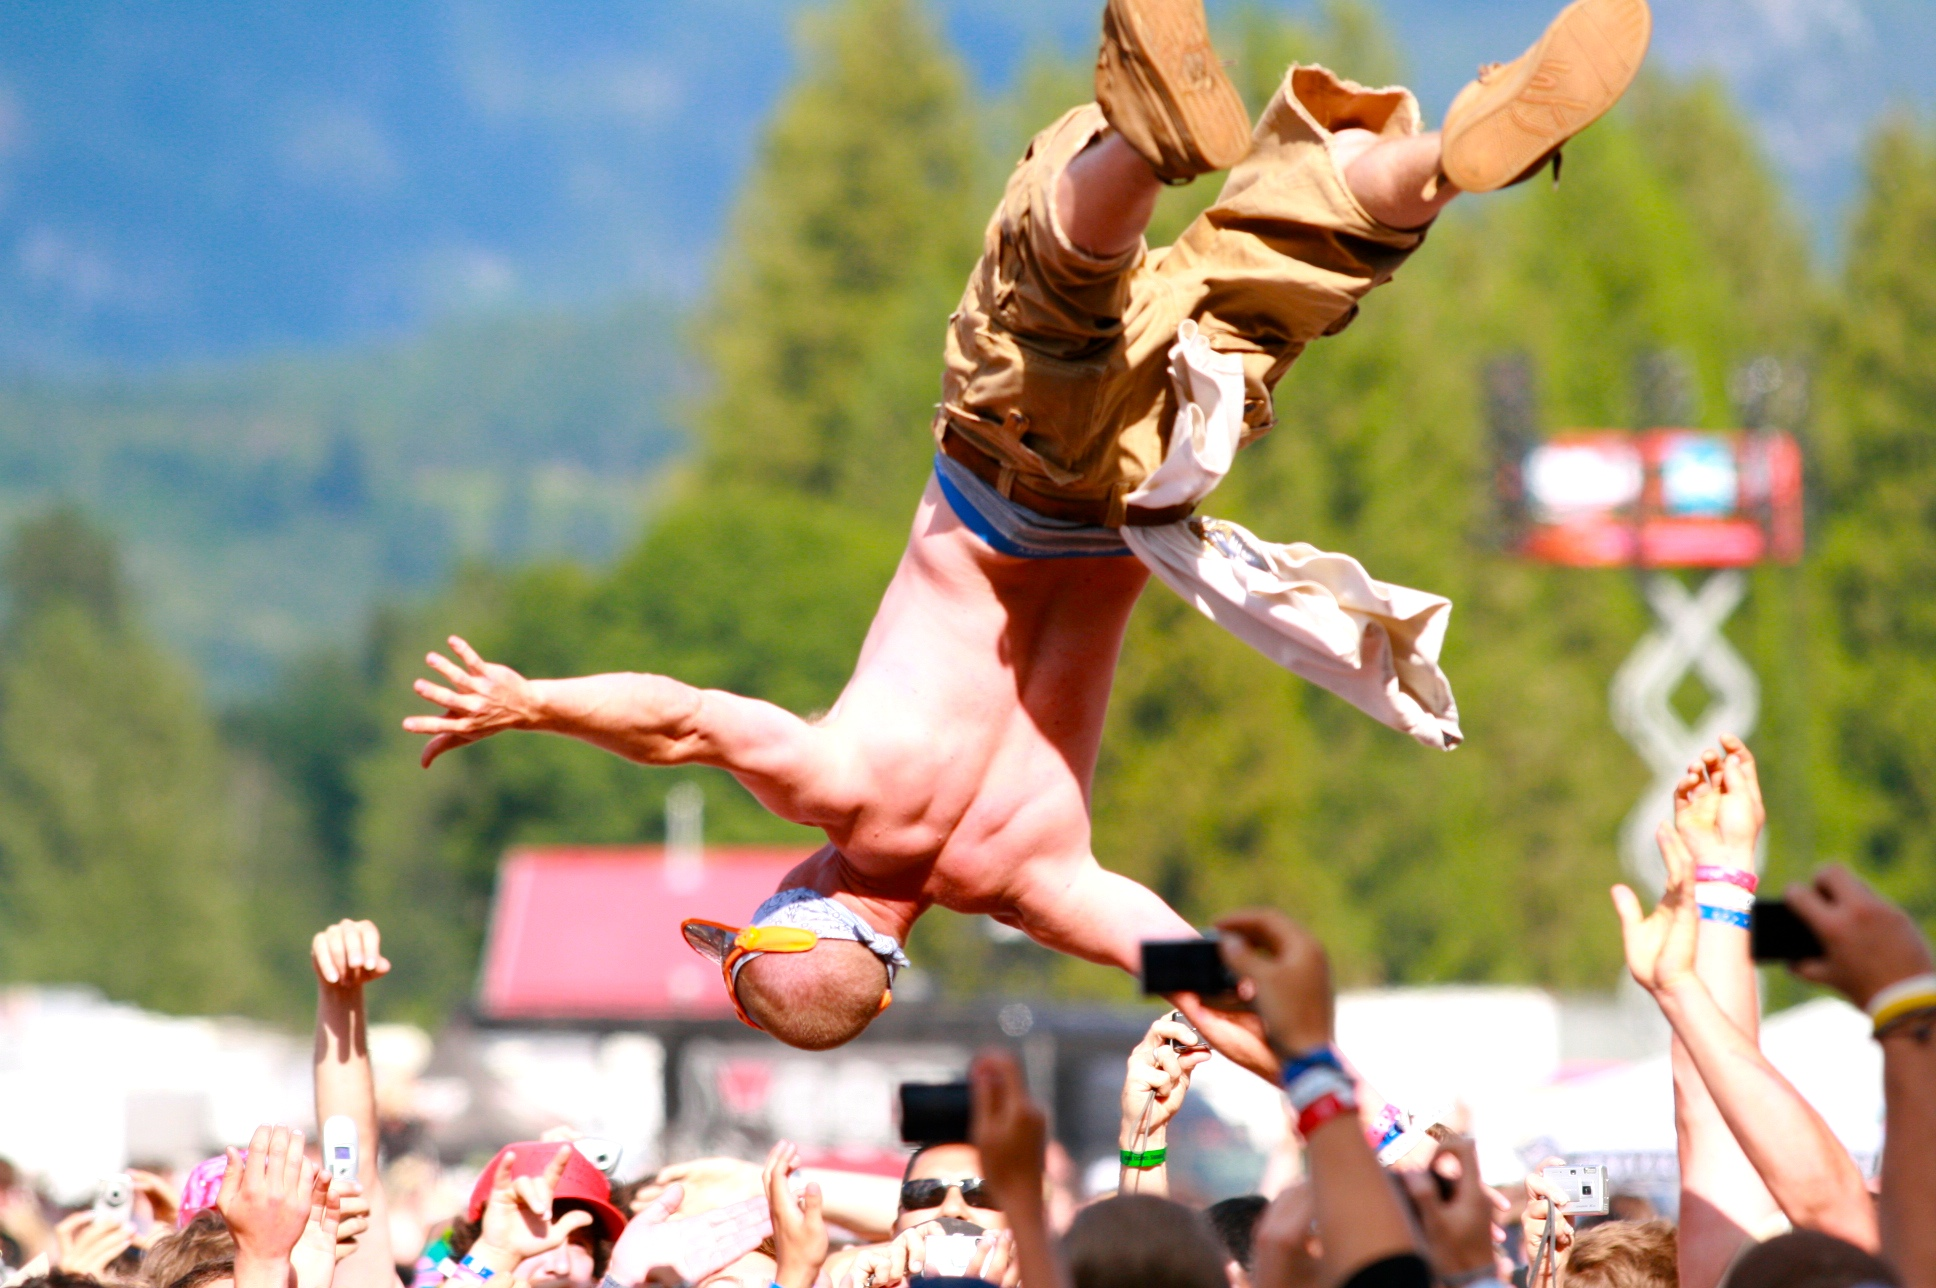 A concert-goer gets tossed in the air during the inaugural Pemberton Festival.